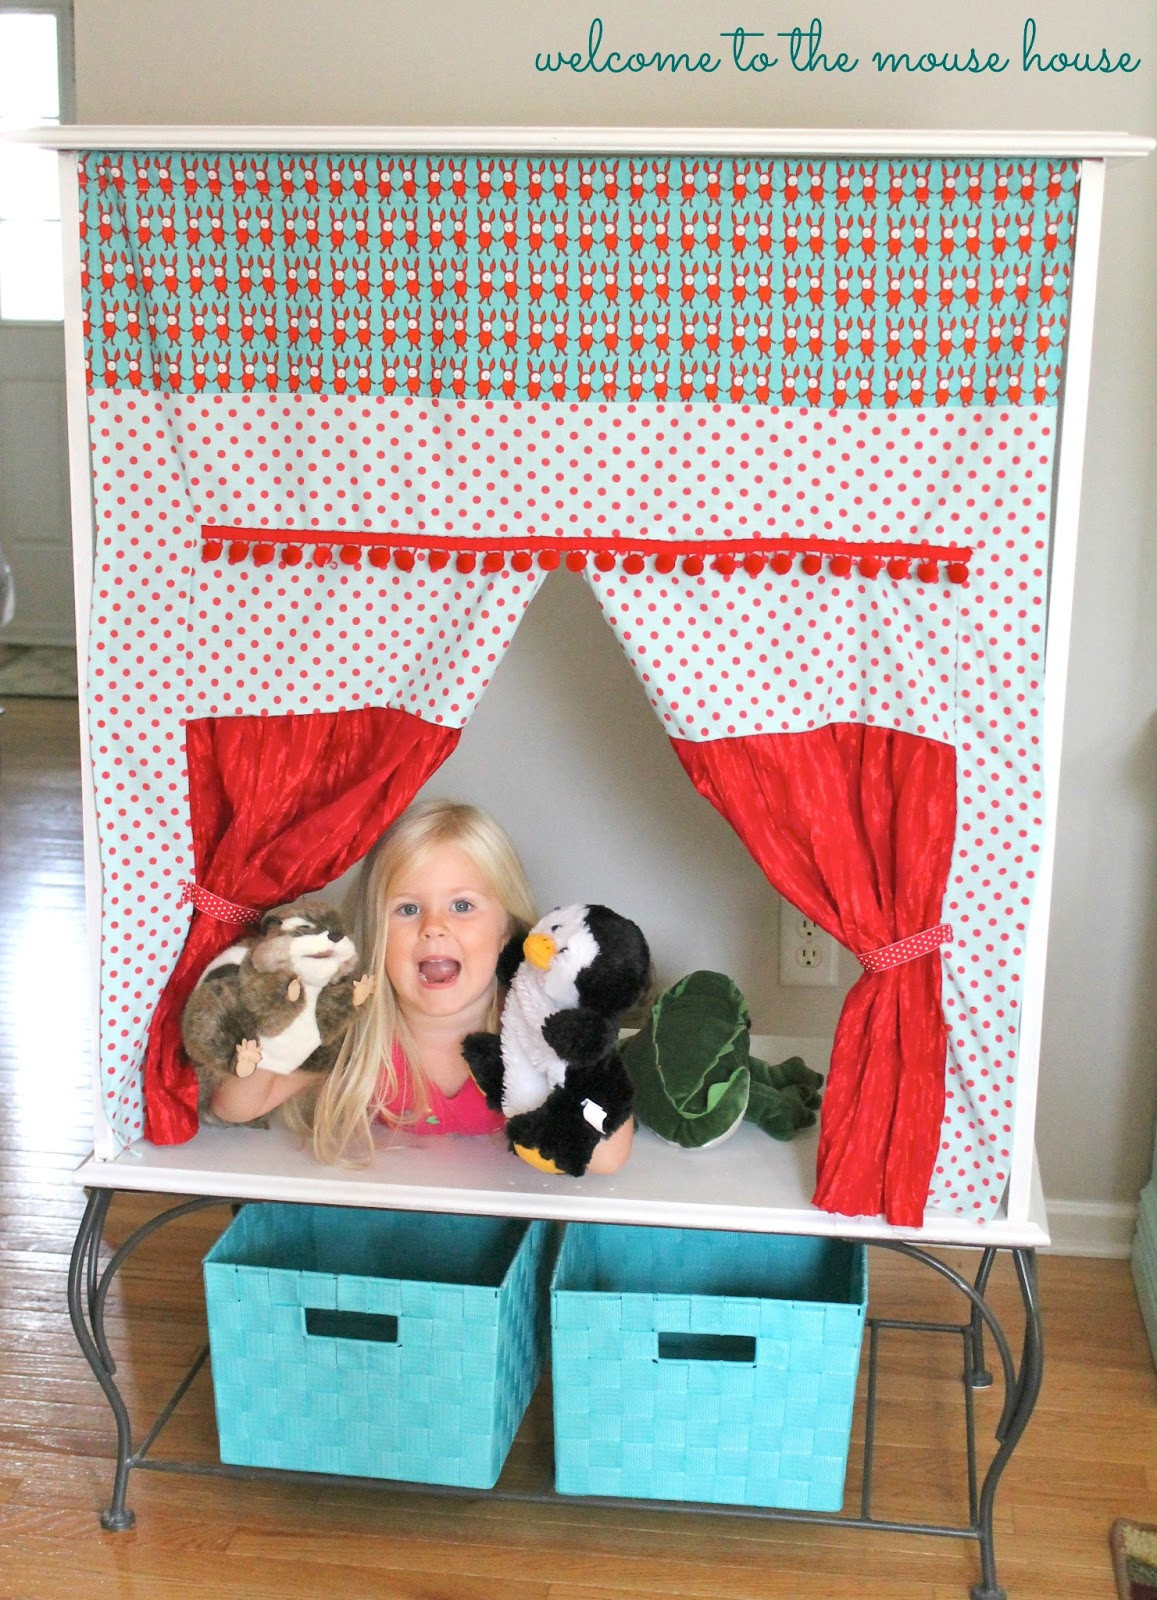 Best ideas about DIY Puppet Theater . Save or Pin The Puppet Theater Cabinet Easy DIY Now.